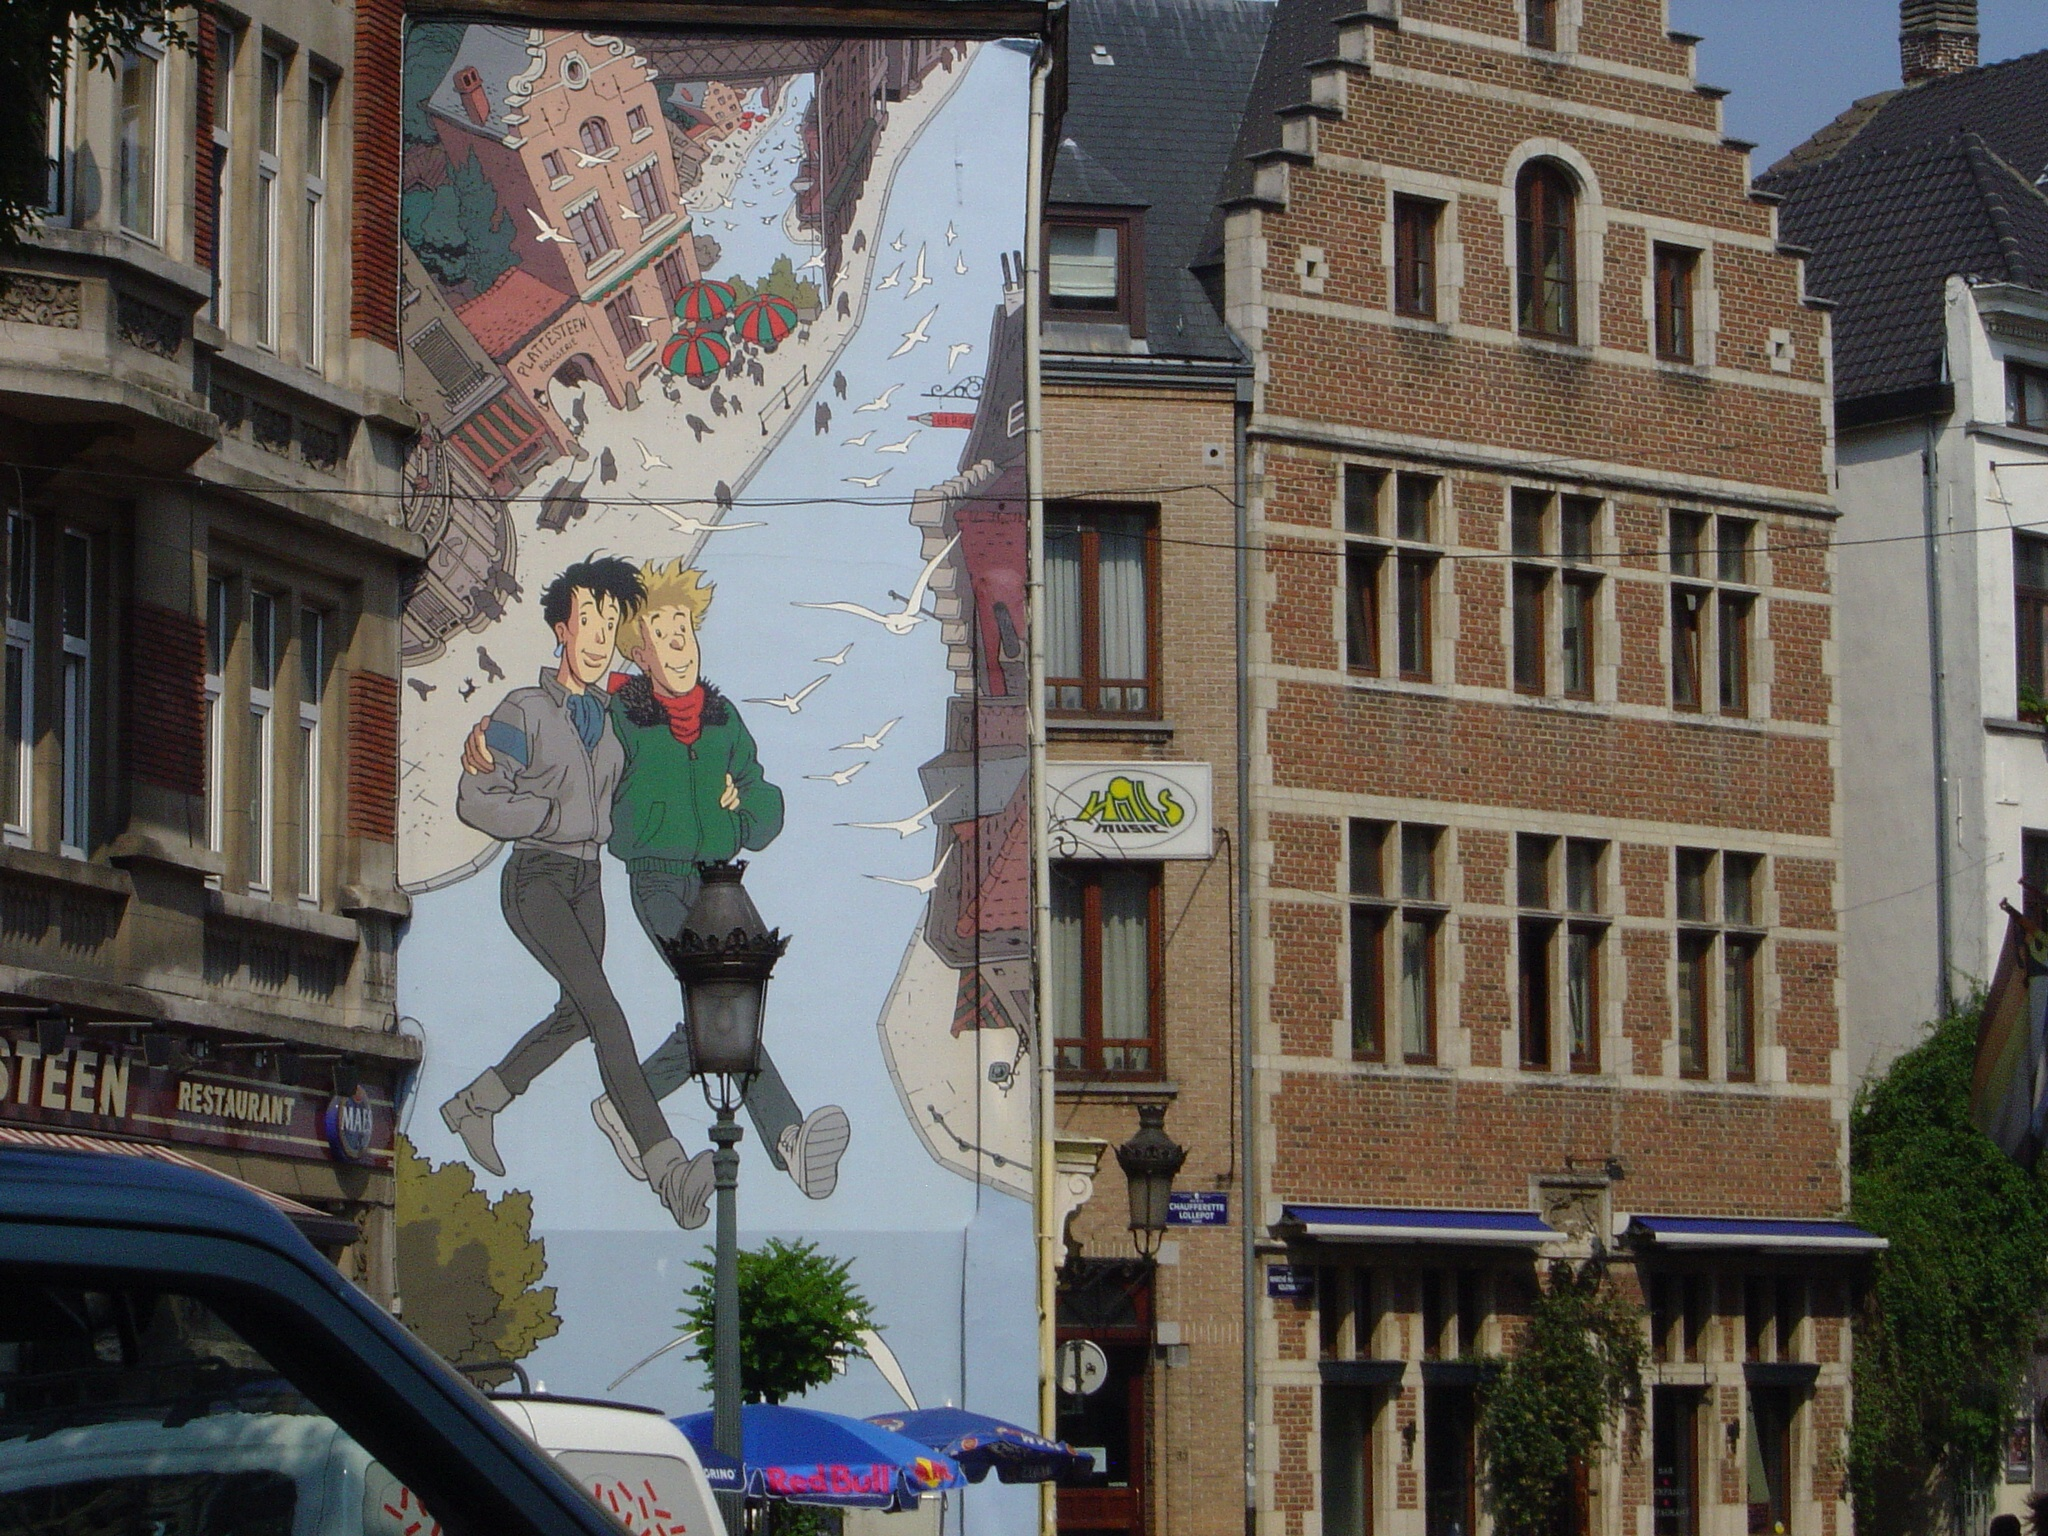 The justification for these murals on the basis of Belgium nationalism is  thin; the population and visitors to Brussels enjoy the comic books.